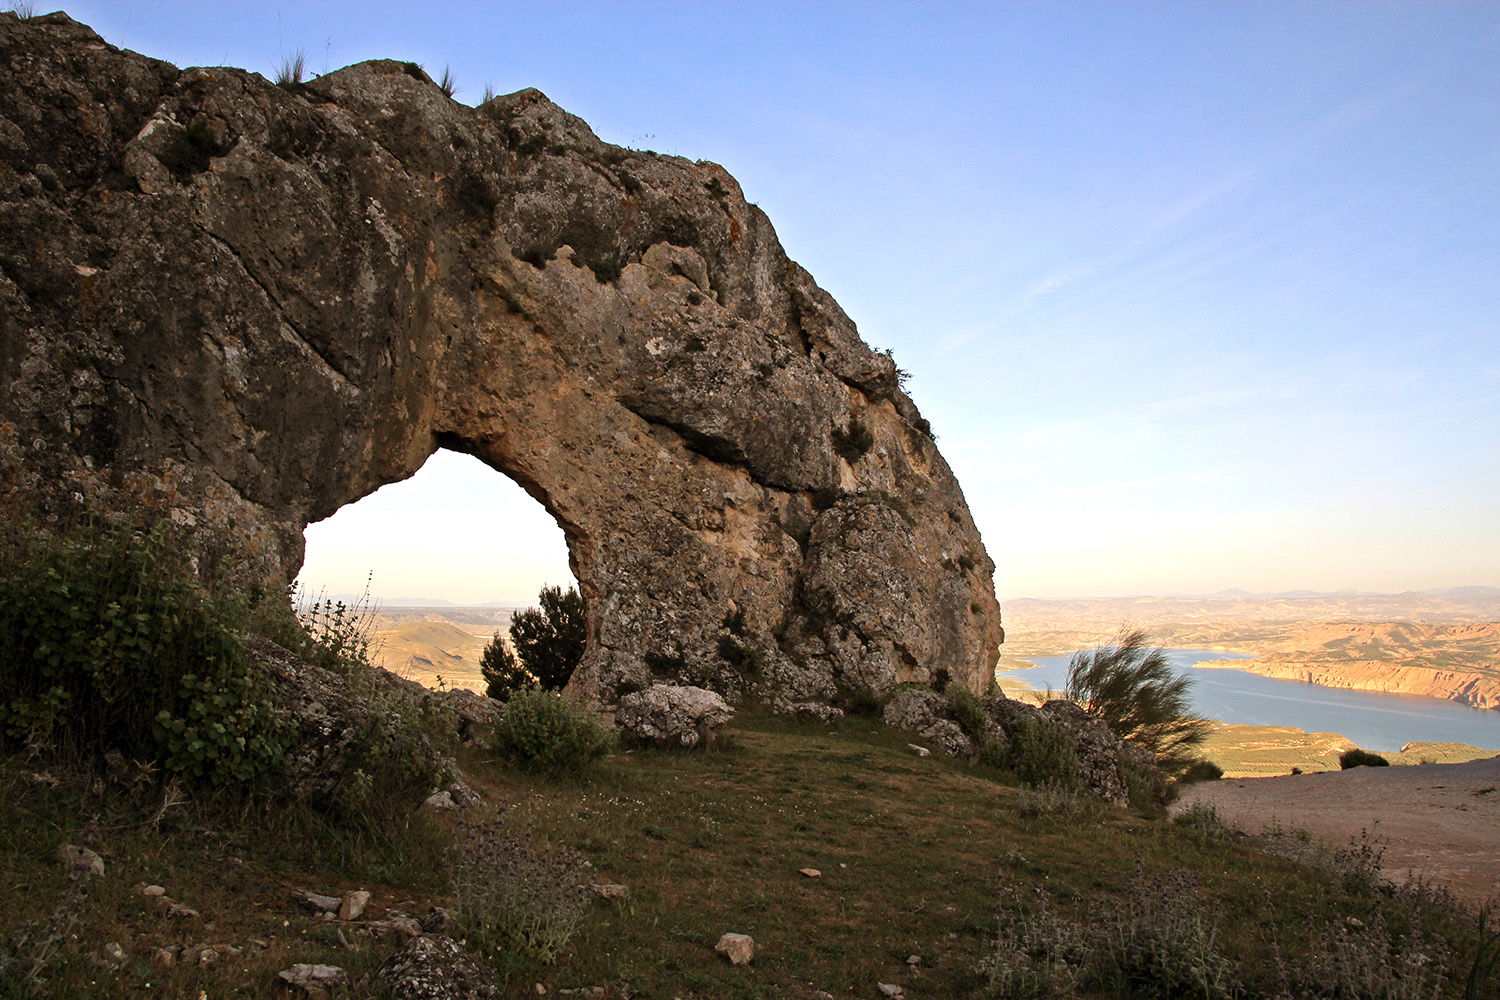 """The Arch of Negratin"" - Zújar, Granada - DR08830"